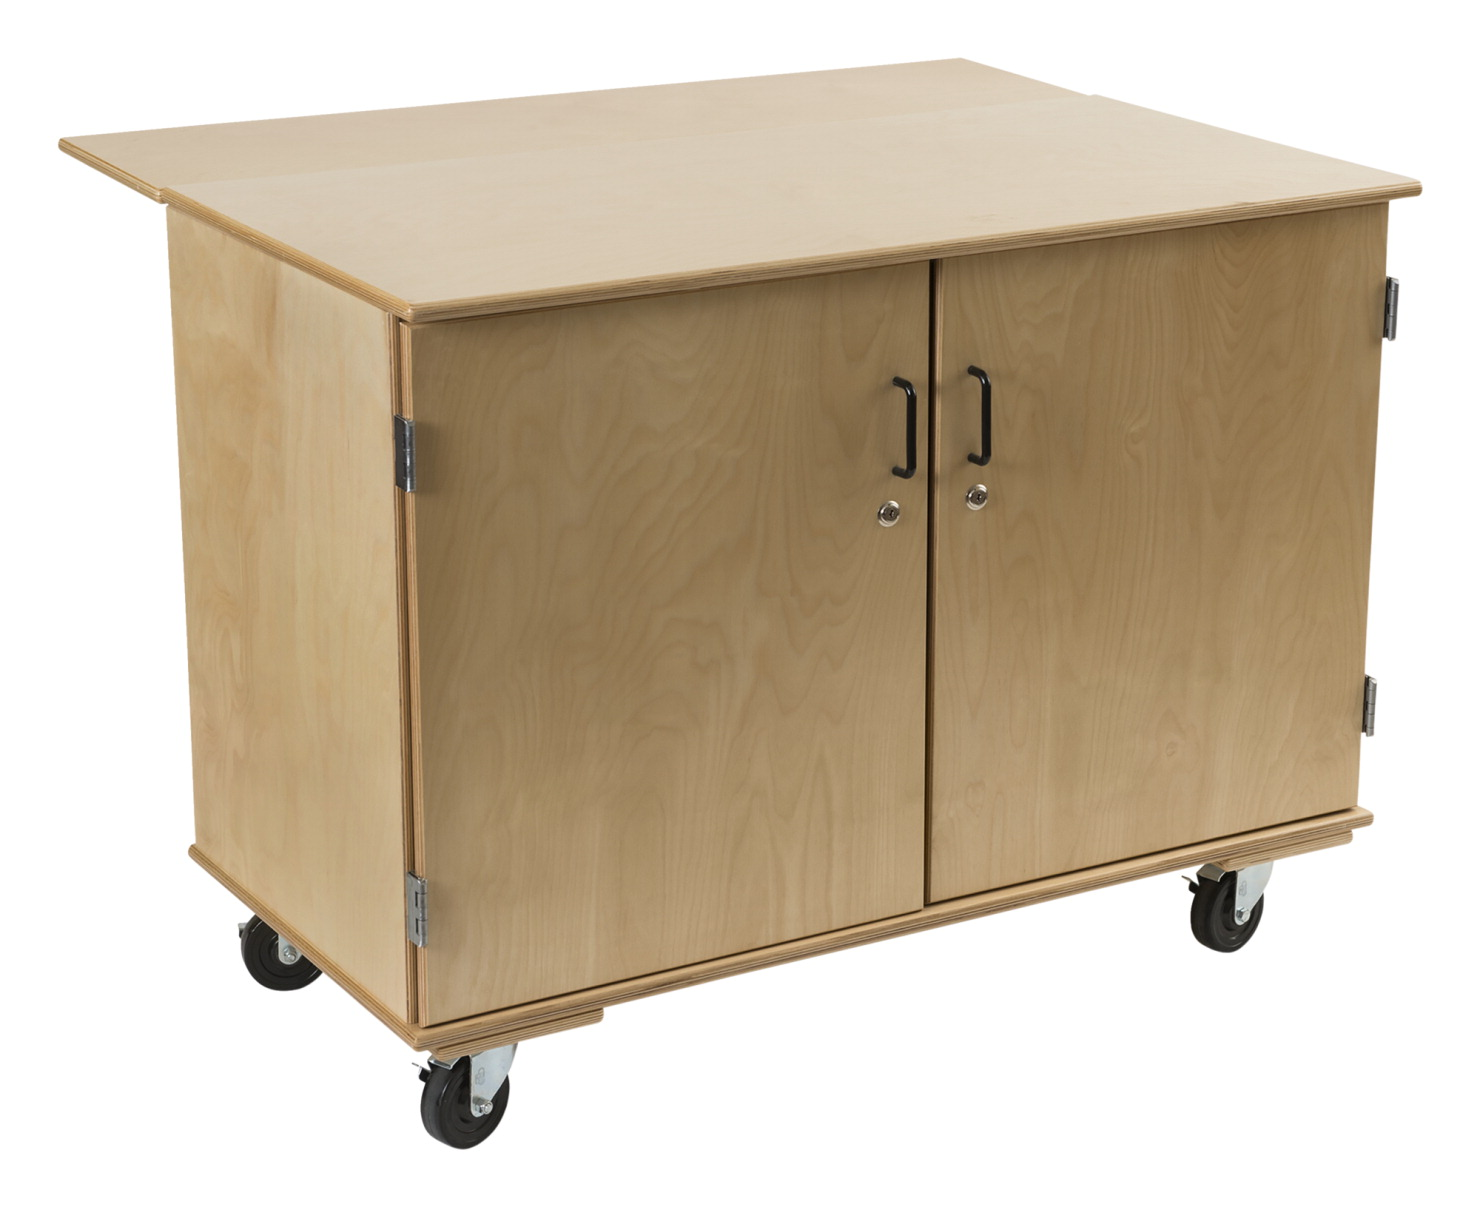 Classroom Select Robotics Storage Workbench, 48 x 24 x 36 Inches, Natural